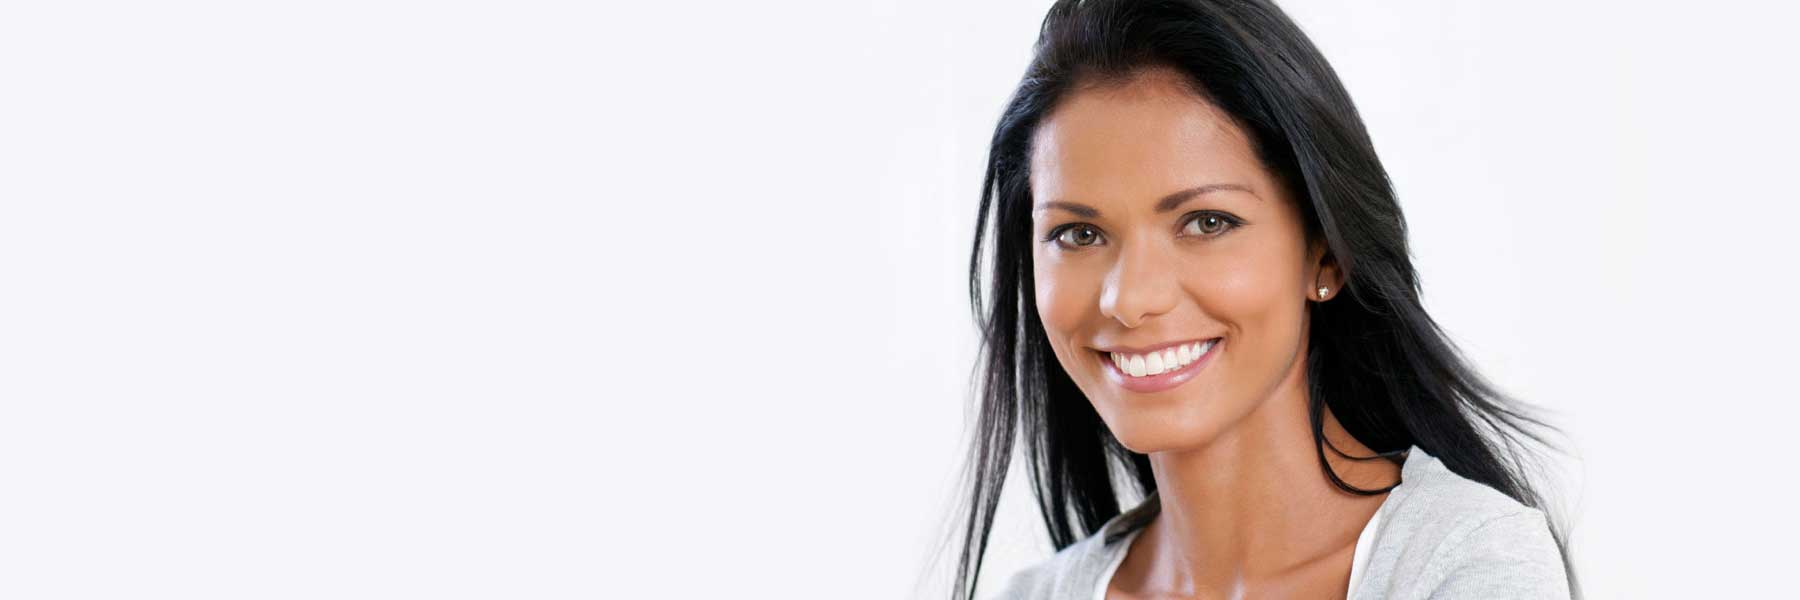 Dental Implants in Cumberland IN banner image